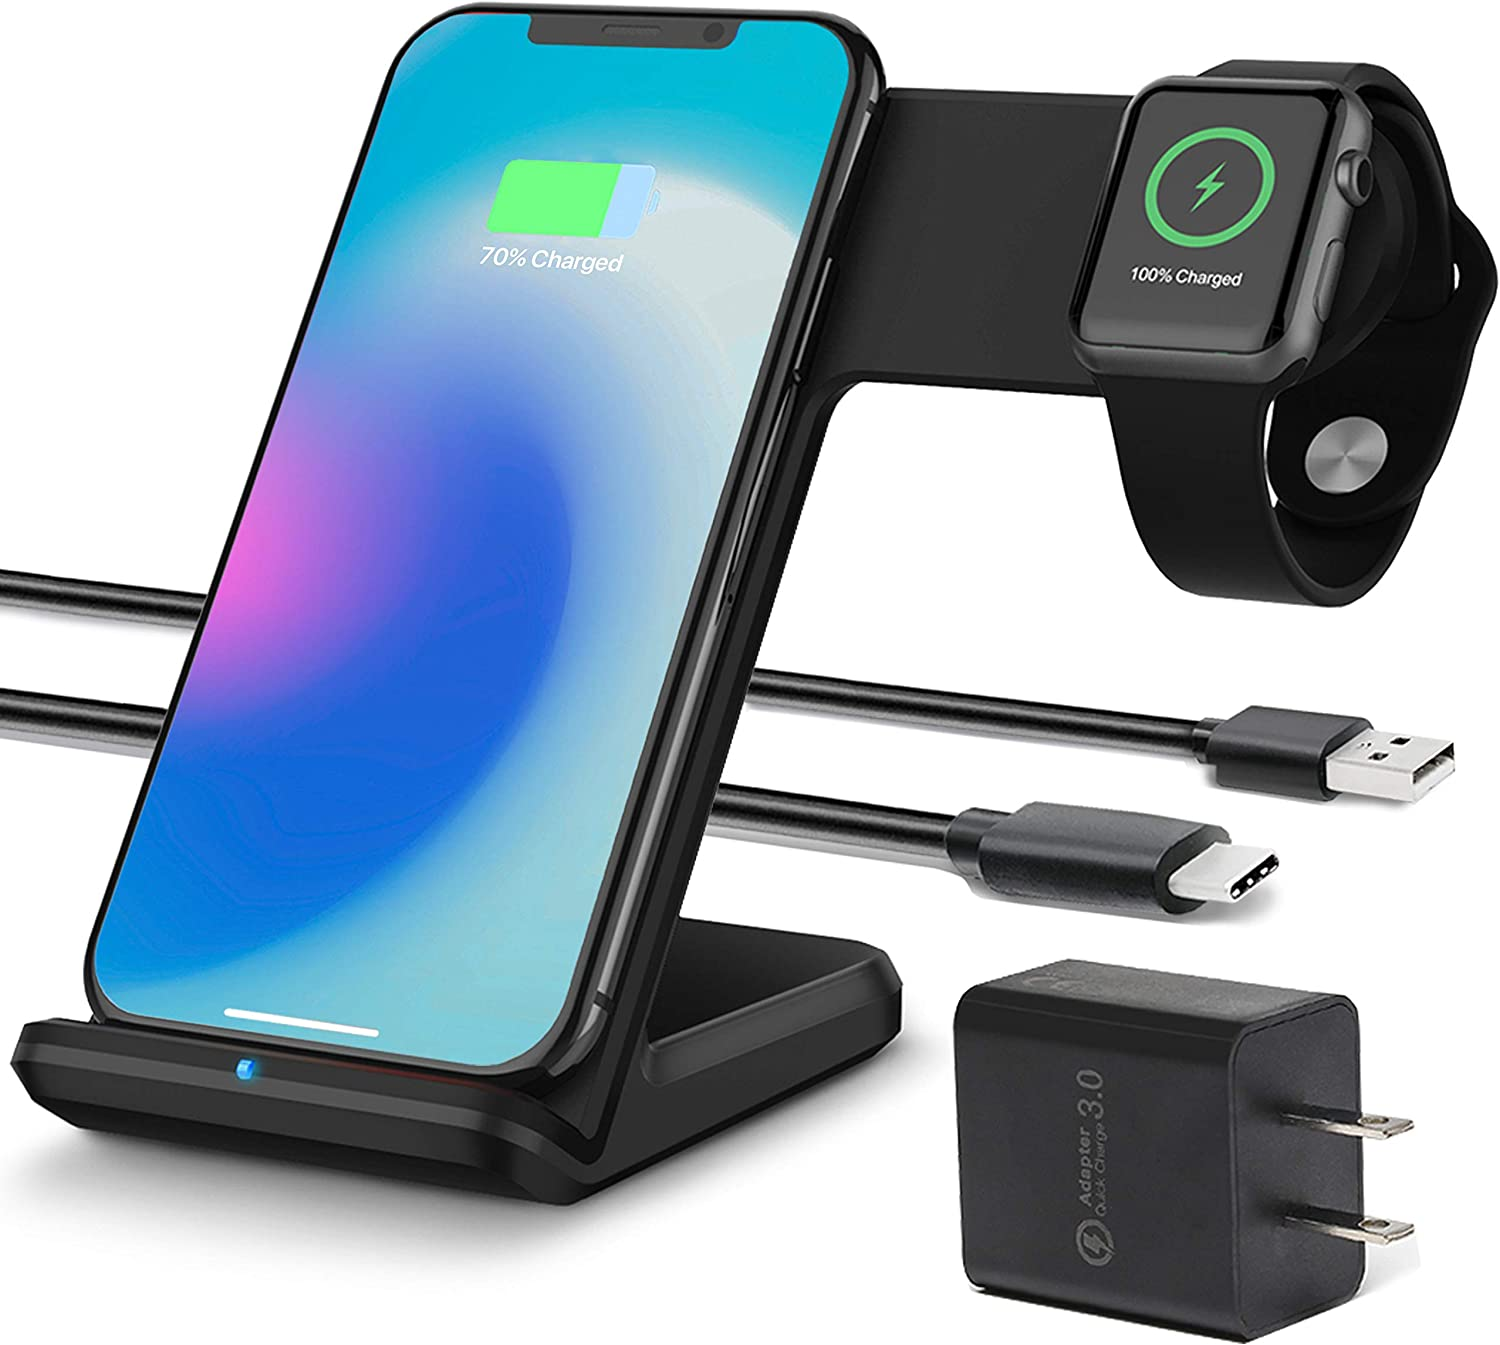 OCOMMO Upgraded 2 in 1 Wireless Charger for Apple Watch 5,4,3,2,1, iPhone 11, 11 PRO, 11 MAX PRO, XS MAX, XR, XS, 8Plus, iPhone and Watch Charging Station (QC 3.0 Adapter Included), Black